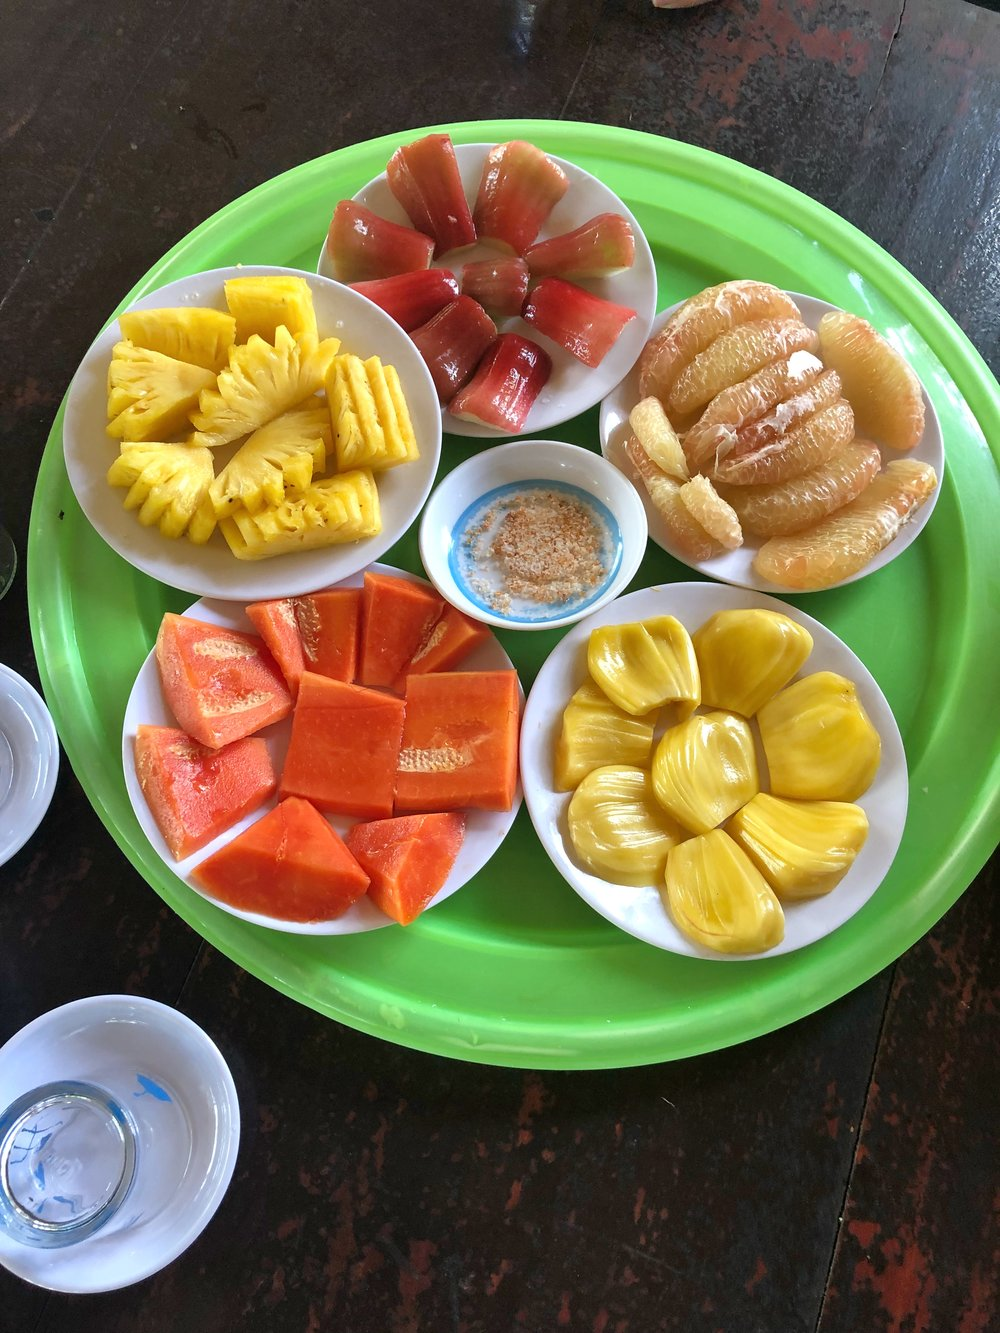 From the top counter clockwise: Java Apple, Pomelo, Jackfruit, Papaya, and Pineapple